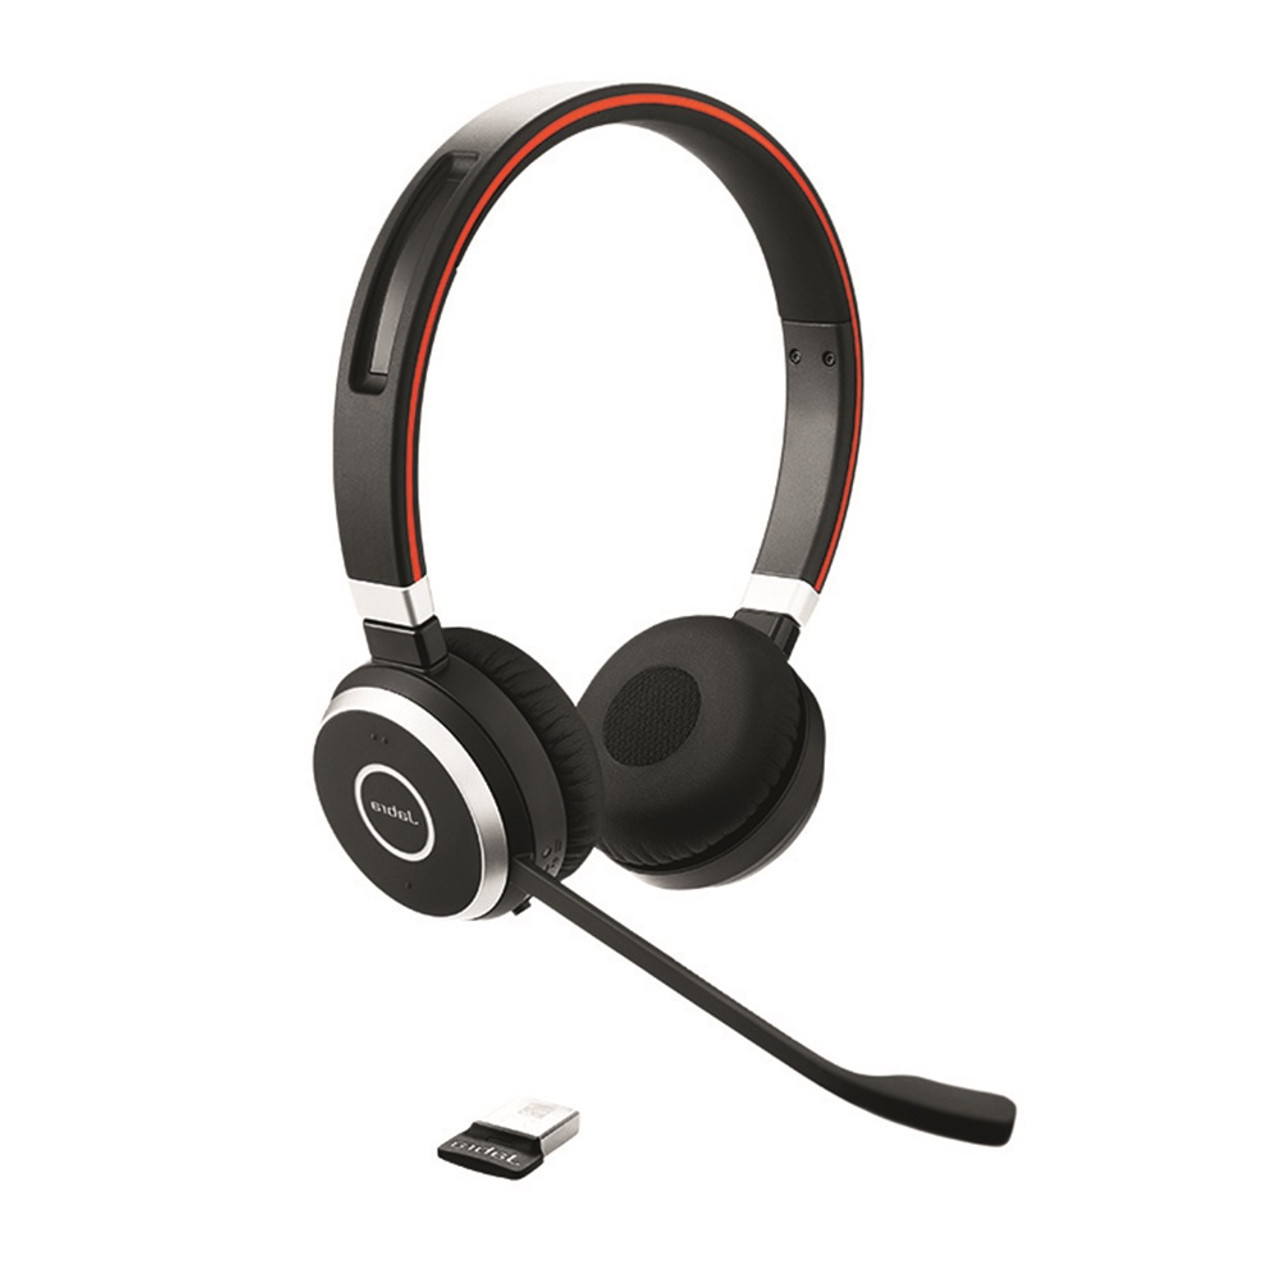 Jabra Evolve 65 Bluetooth Stereo Headset Bundle Uc Version Bonus Mic Cushions Usb Dongle And Charging Stand Compatible With Softphones Smartphones Tablets Pc Mac 6599 823 499